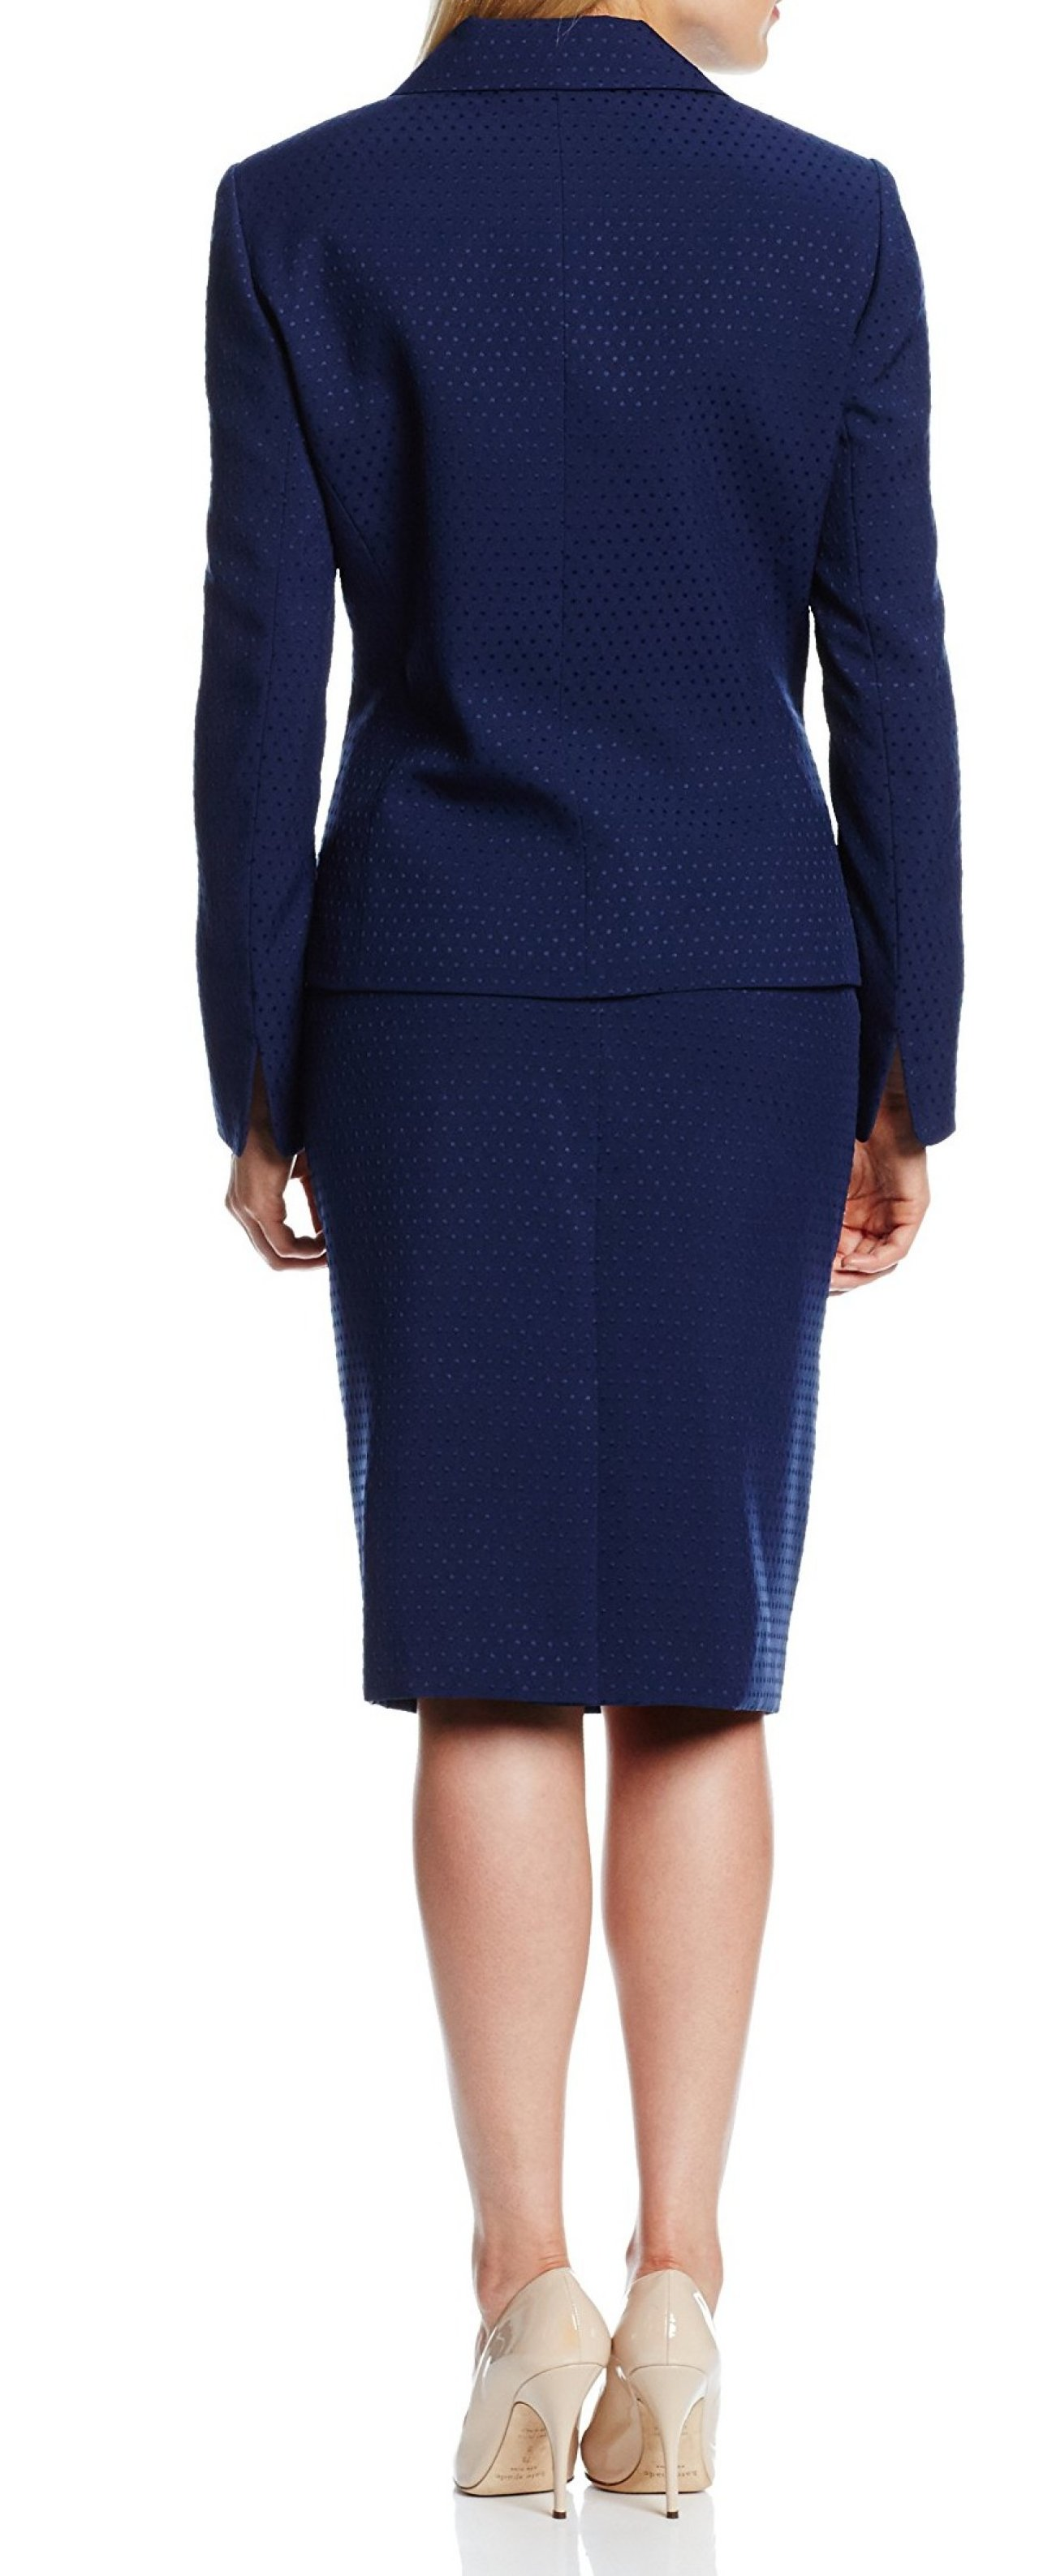 le suit new navy blue womens size 6 polka dot pencil